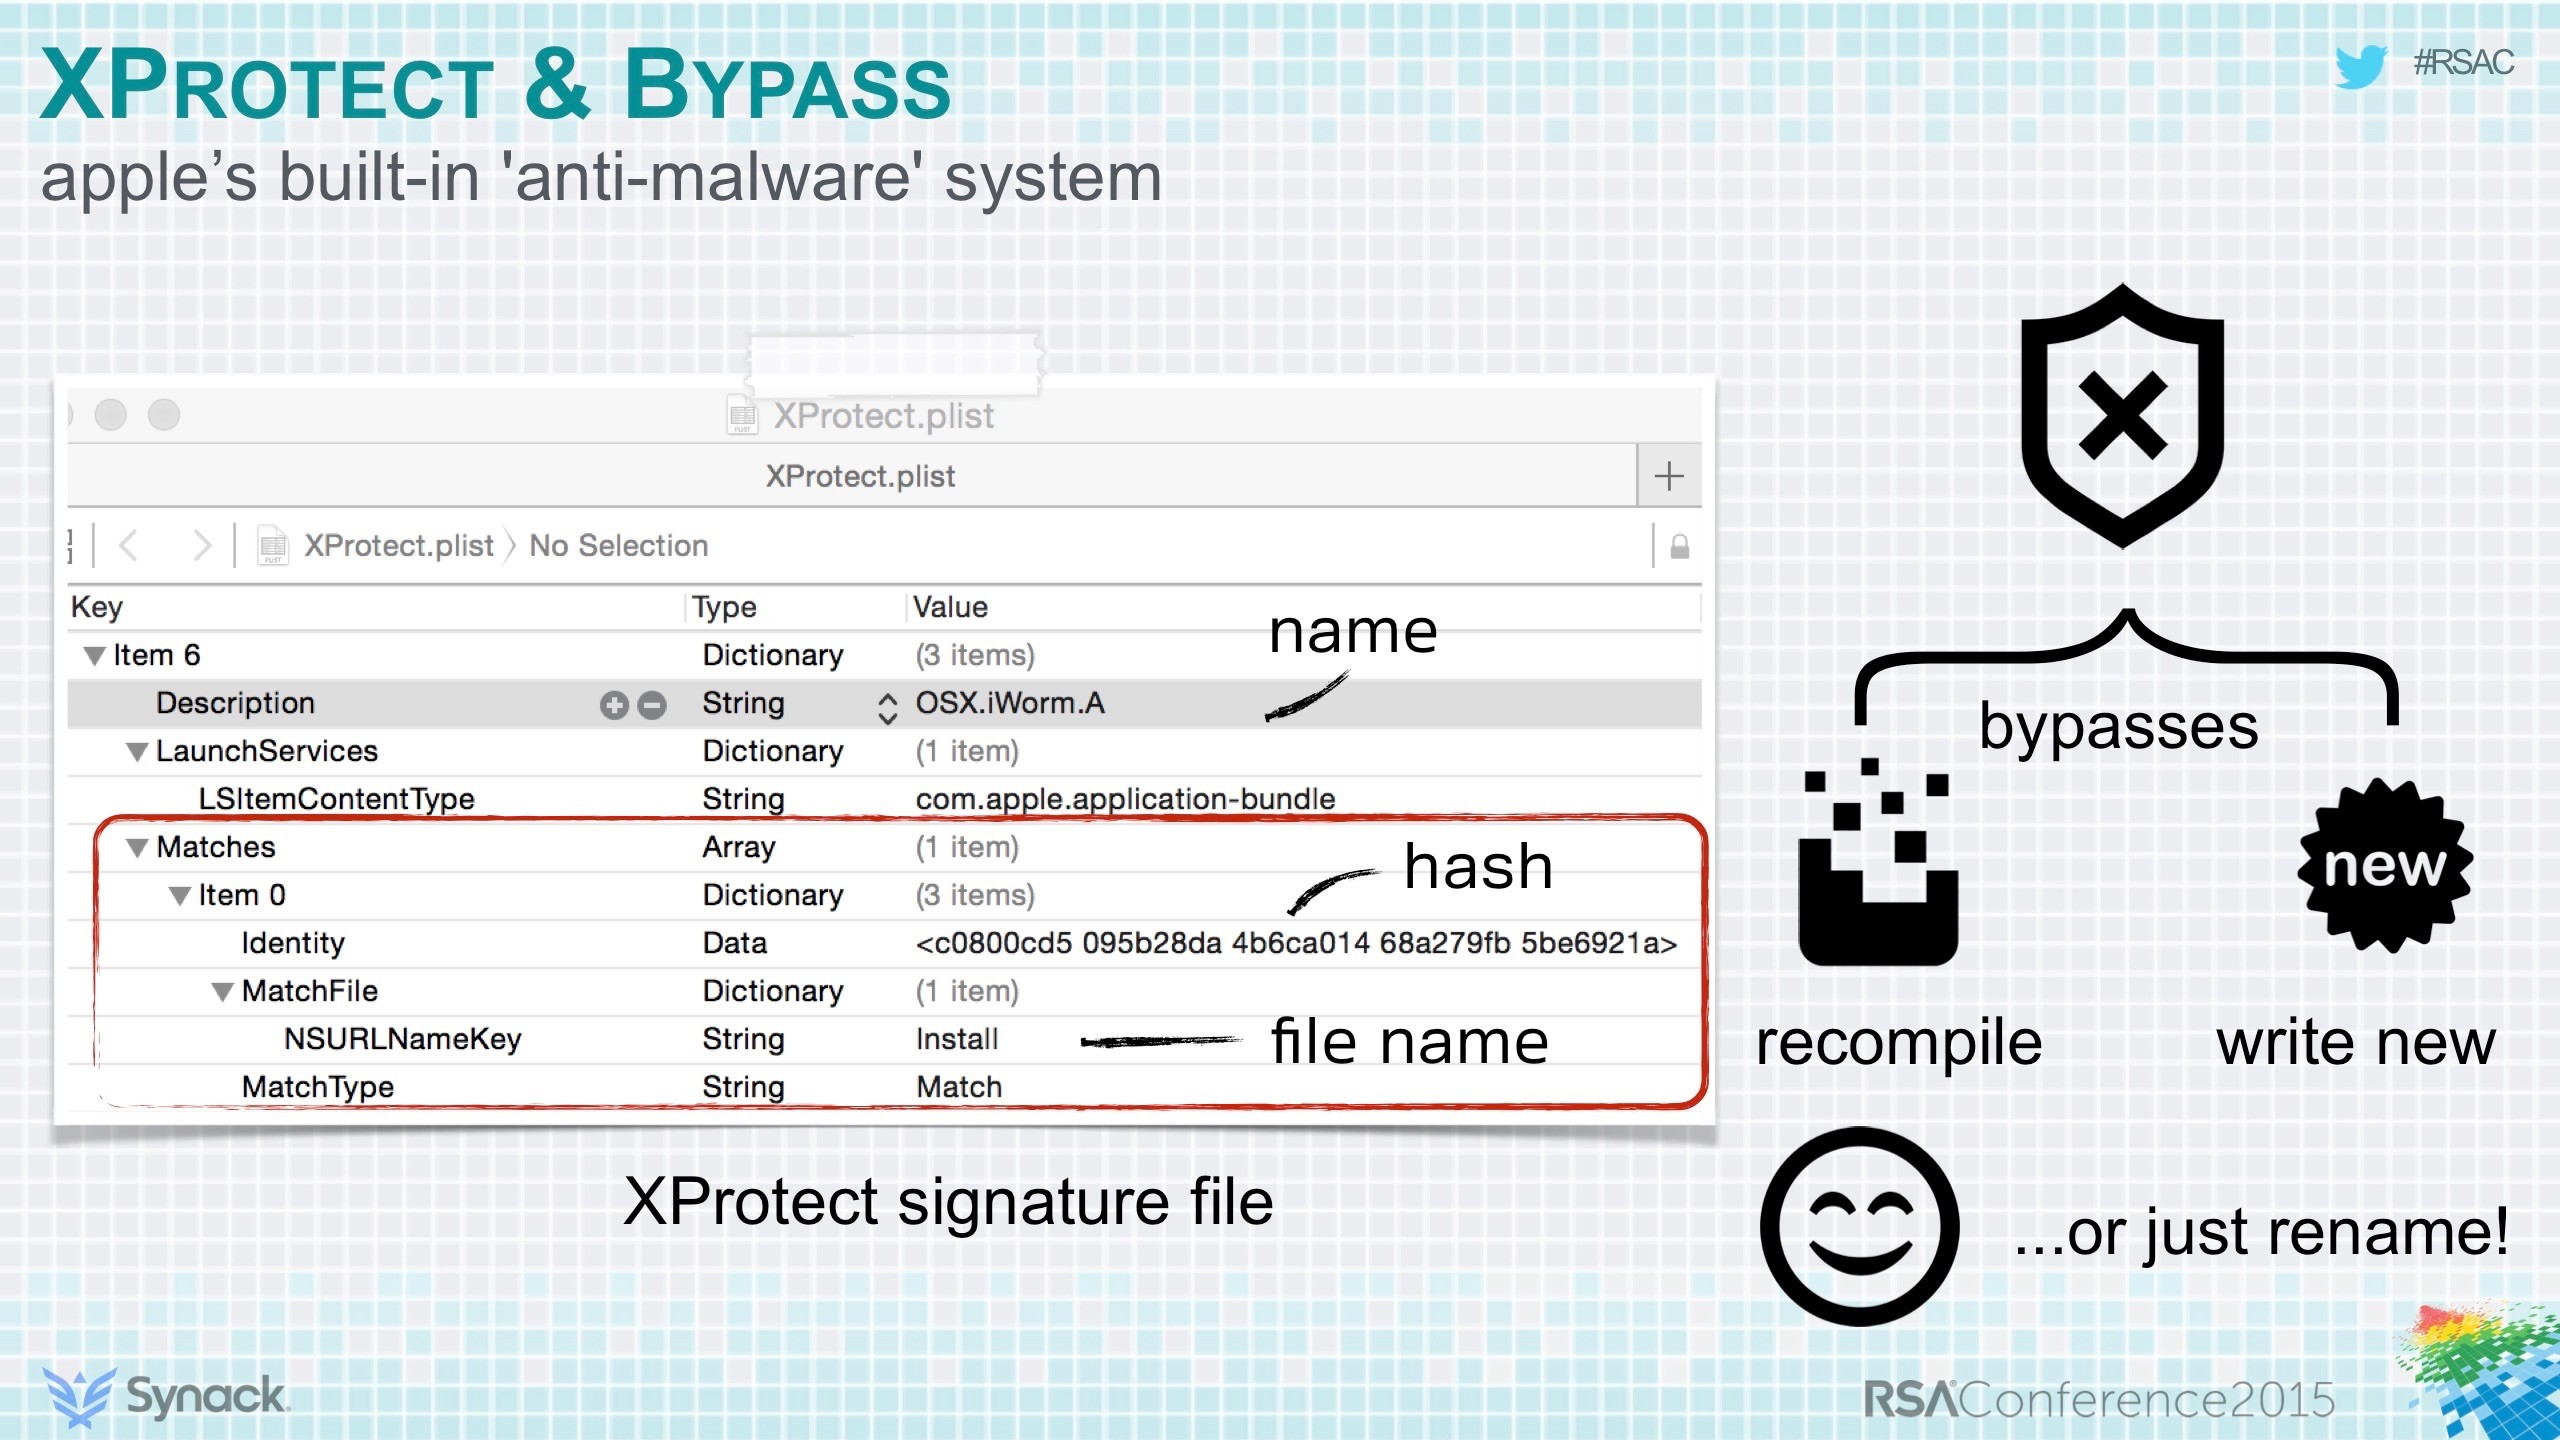 XProtect-Bypass-build-in-malware-system